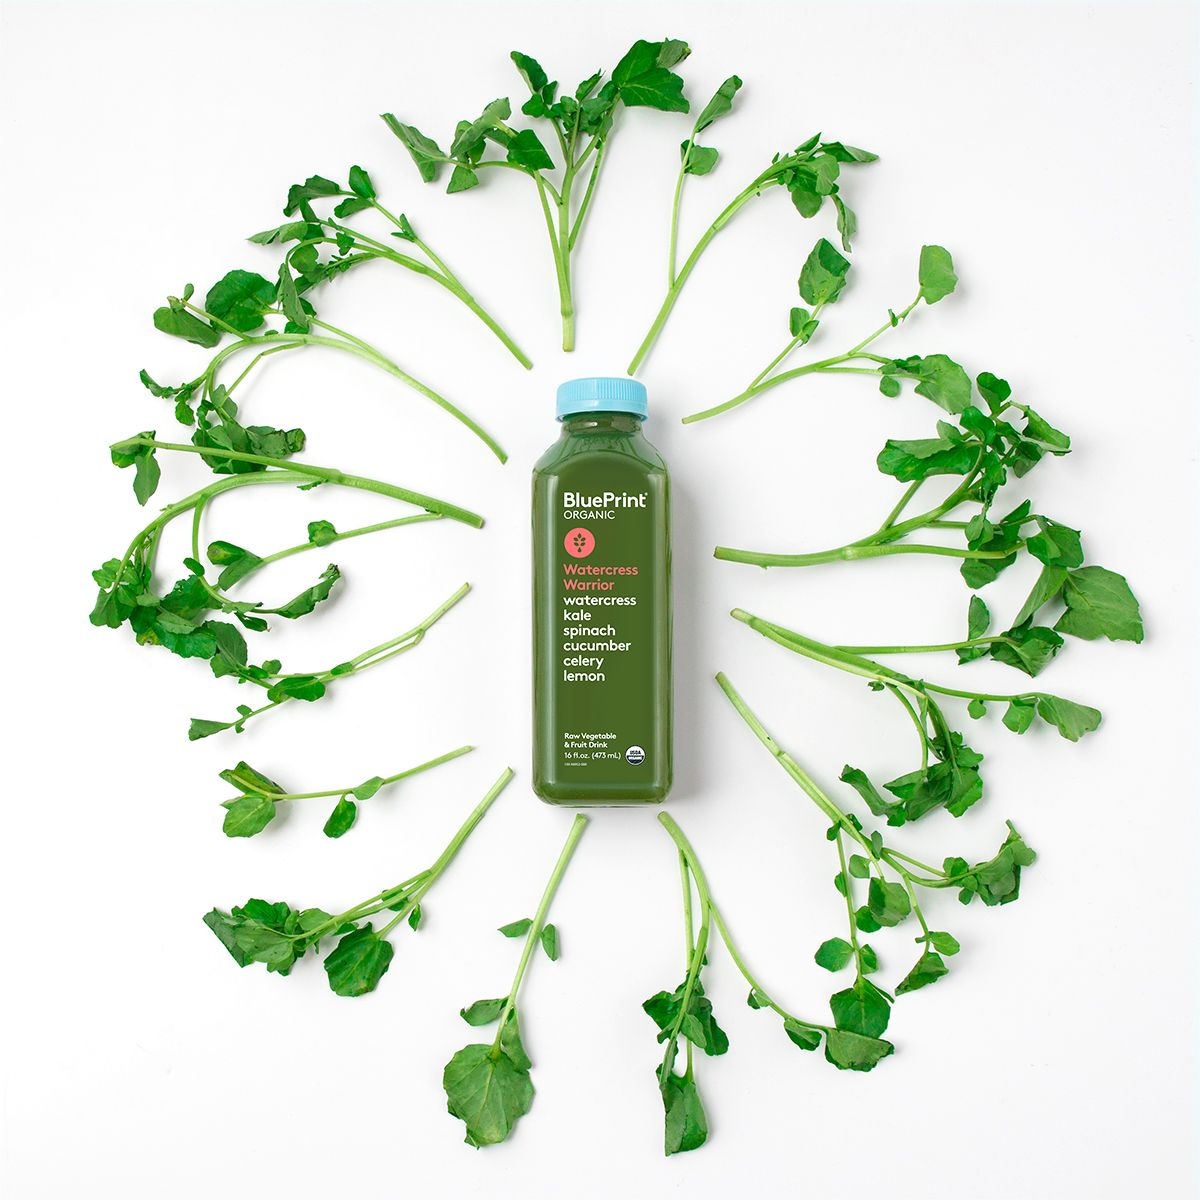 We fit a lot of greens in one bottle so you can fit a lot of living watercress warrior blueprint cleanse malvernweather Images